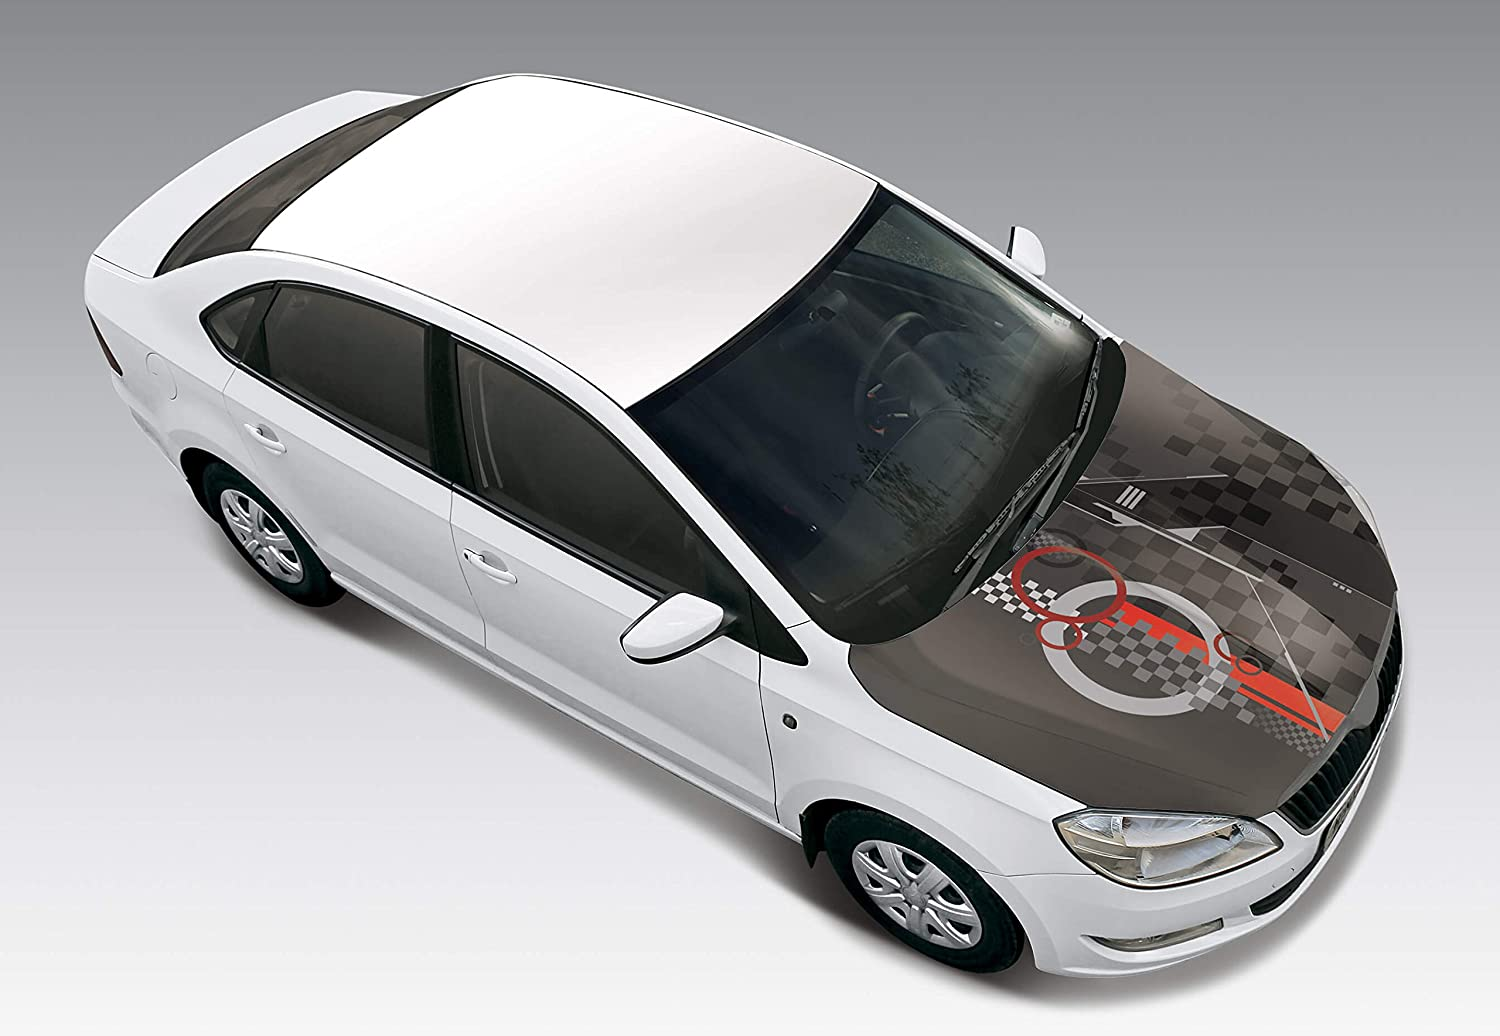 Autographix checkmate car bonnet wrap small size black grey red amazon in car motorbike